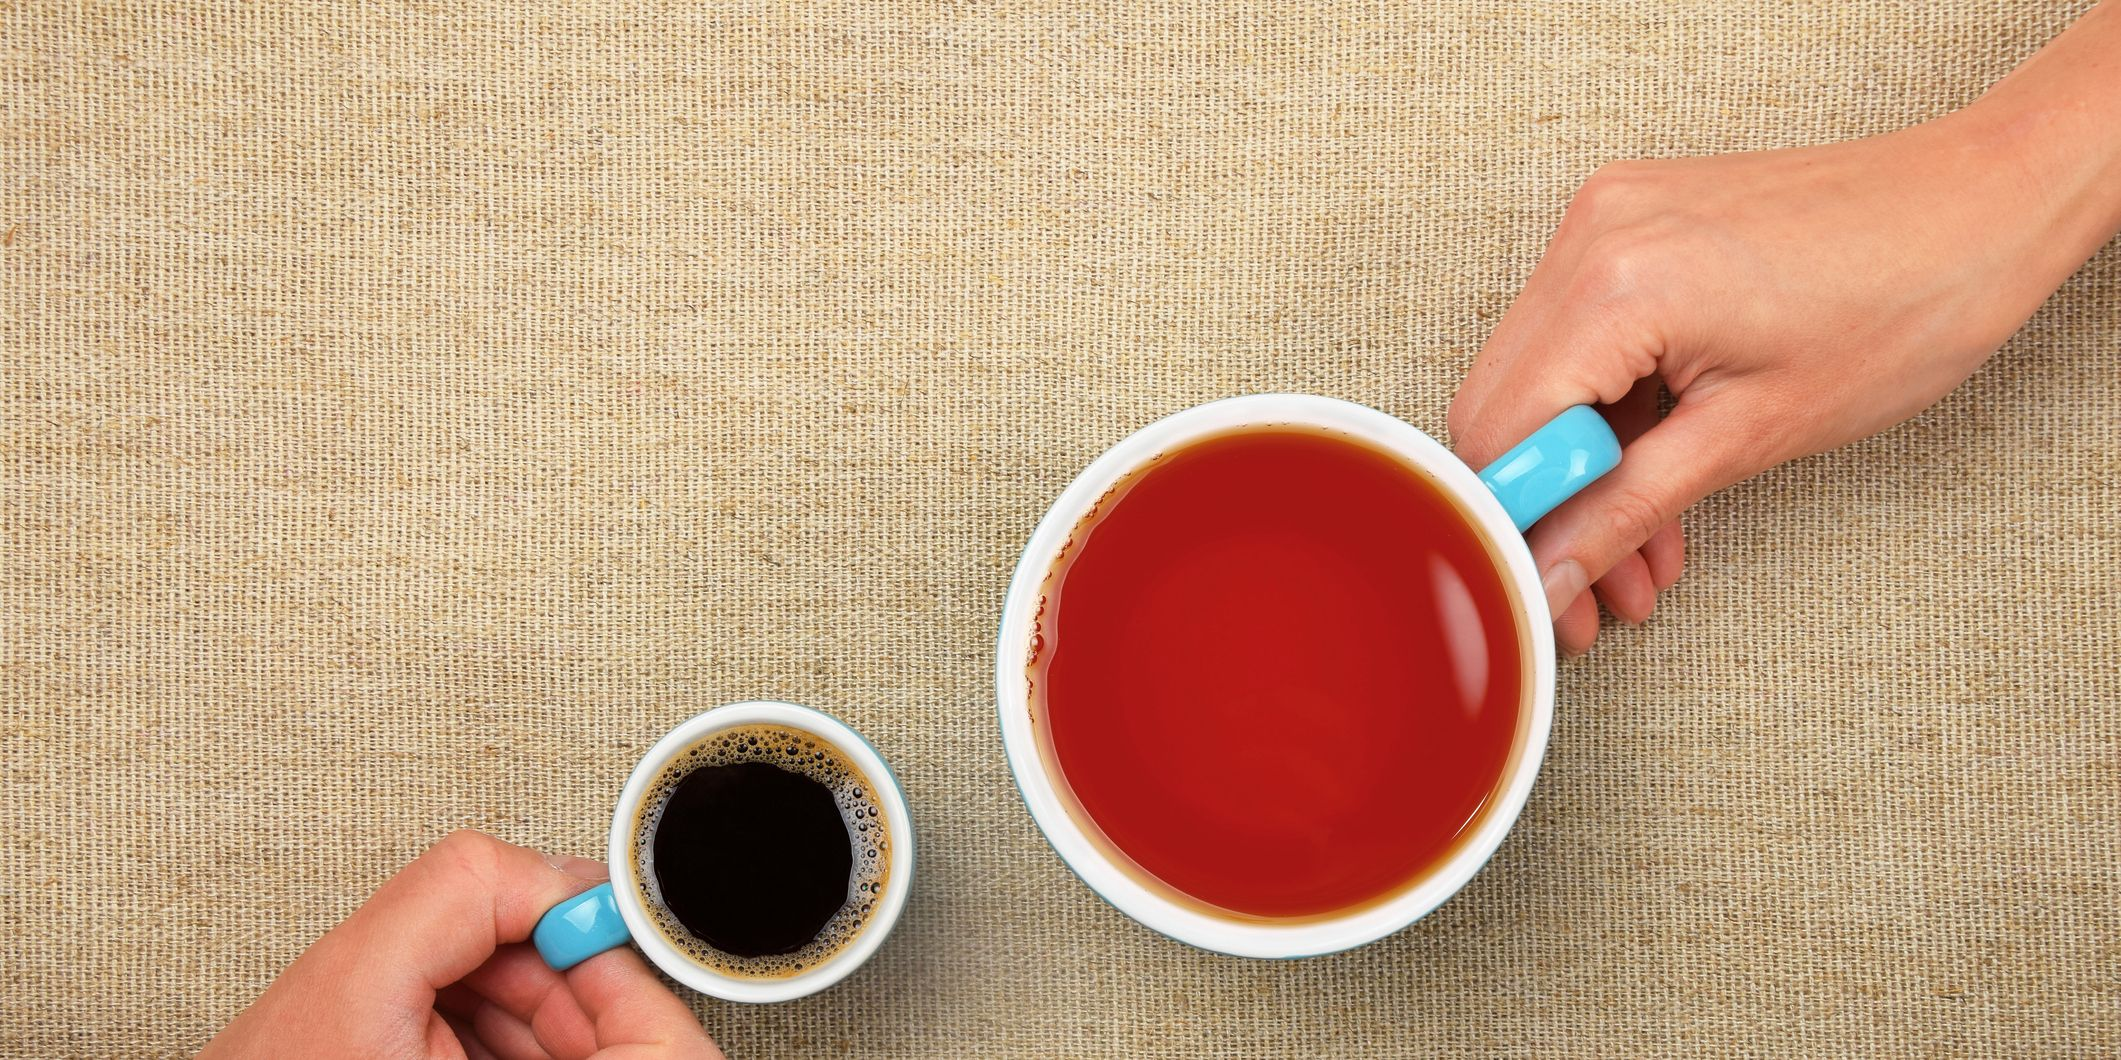 Tea Vs. Coffee: What's Better for You?